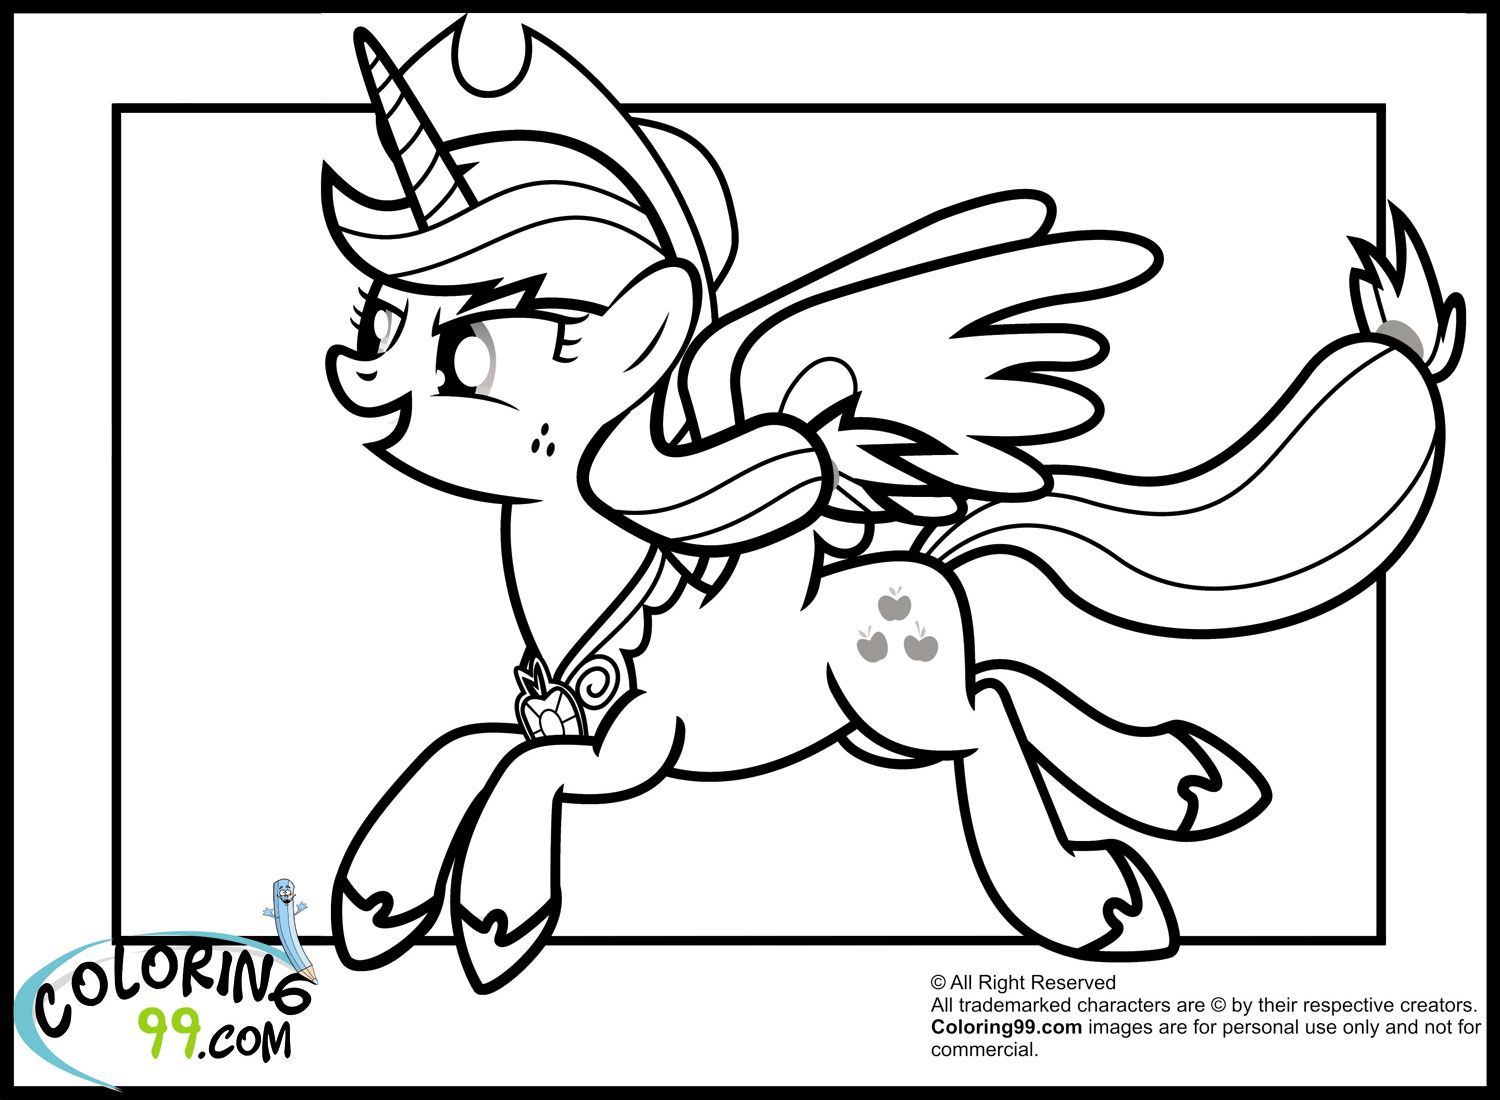 Vintage my little pony coloring pages - My Little Pony Coloring Pages My Little Pony Applejack Coloring Pages